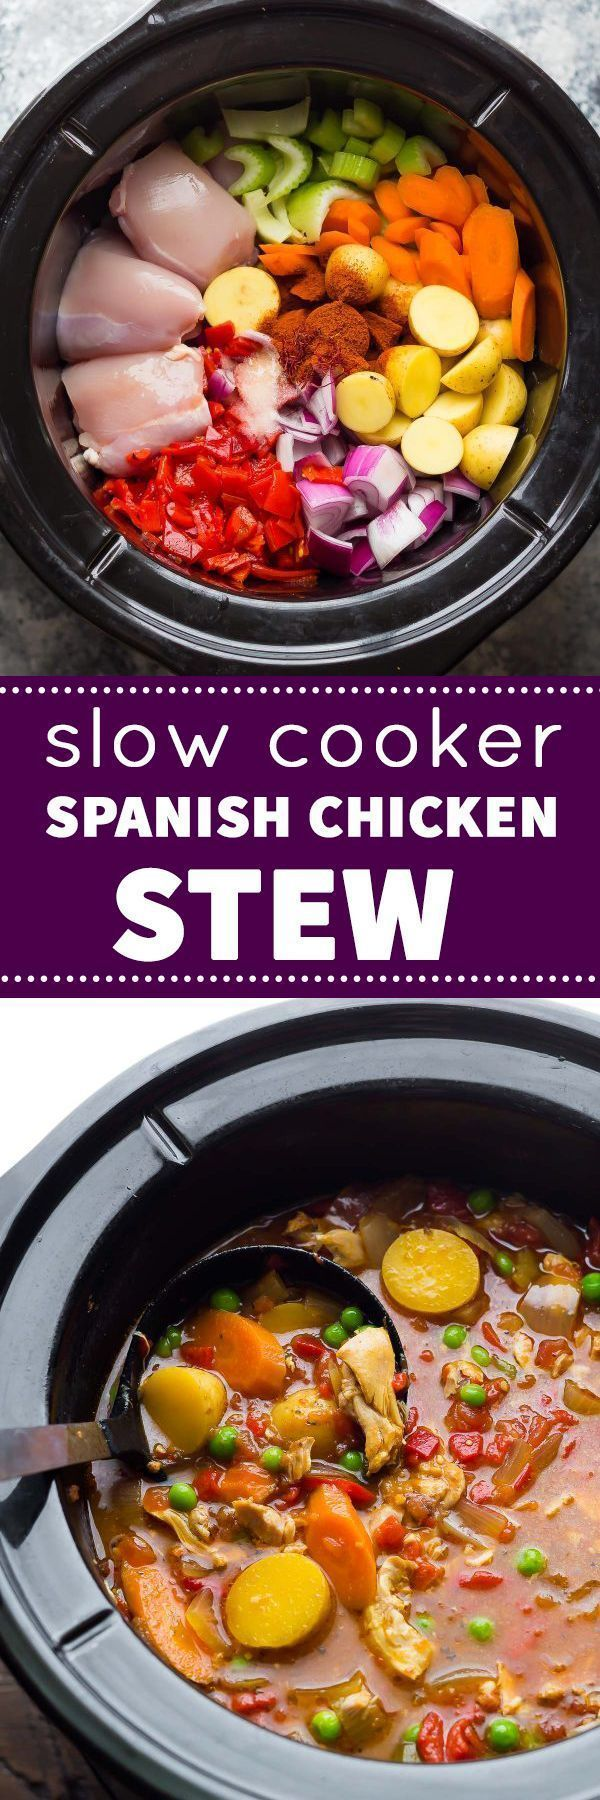 This slow cooker Spanish chicken stew will warm you right up and is packed full of fresh vegetables! This slow-cooked stew is packed with Mediterranean flavour from chorizo, olives, tomatoes and peppers. The meat will fall off the bone – mop up the sauce with bread PREP 15 mins COOK 6 hrs, 20 mins DIFFICULTY Easy SERVES/MAKES Serves 6More